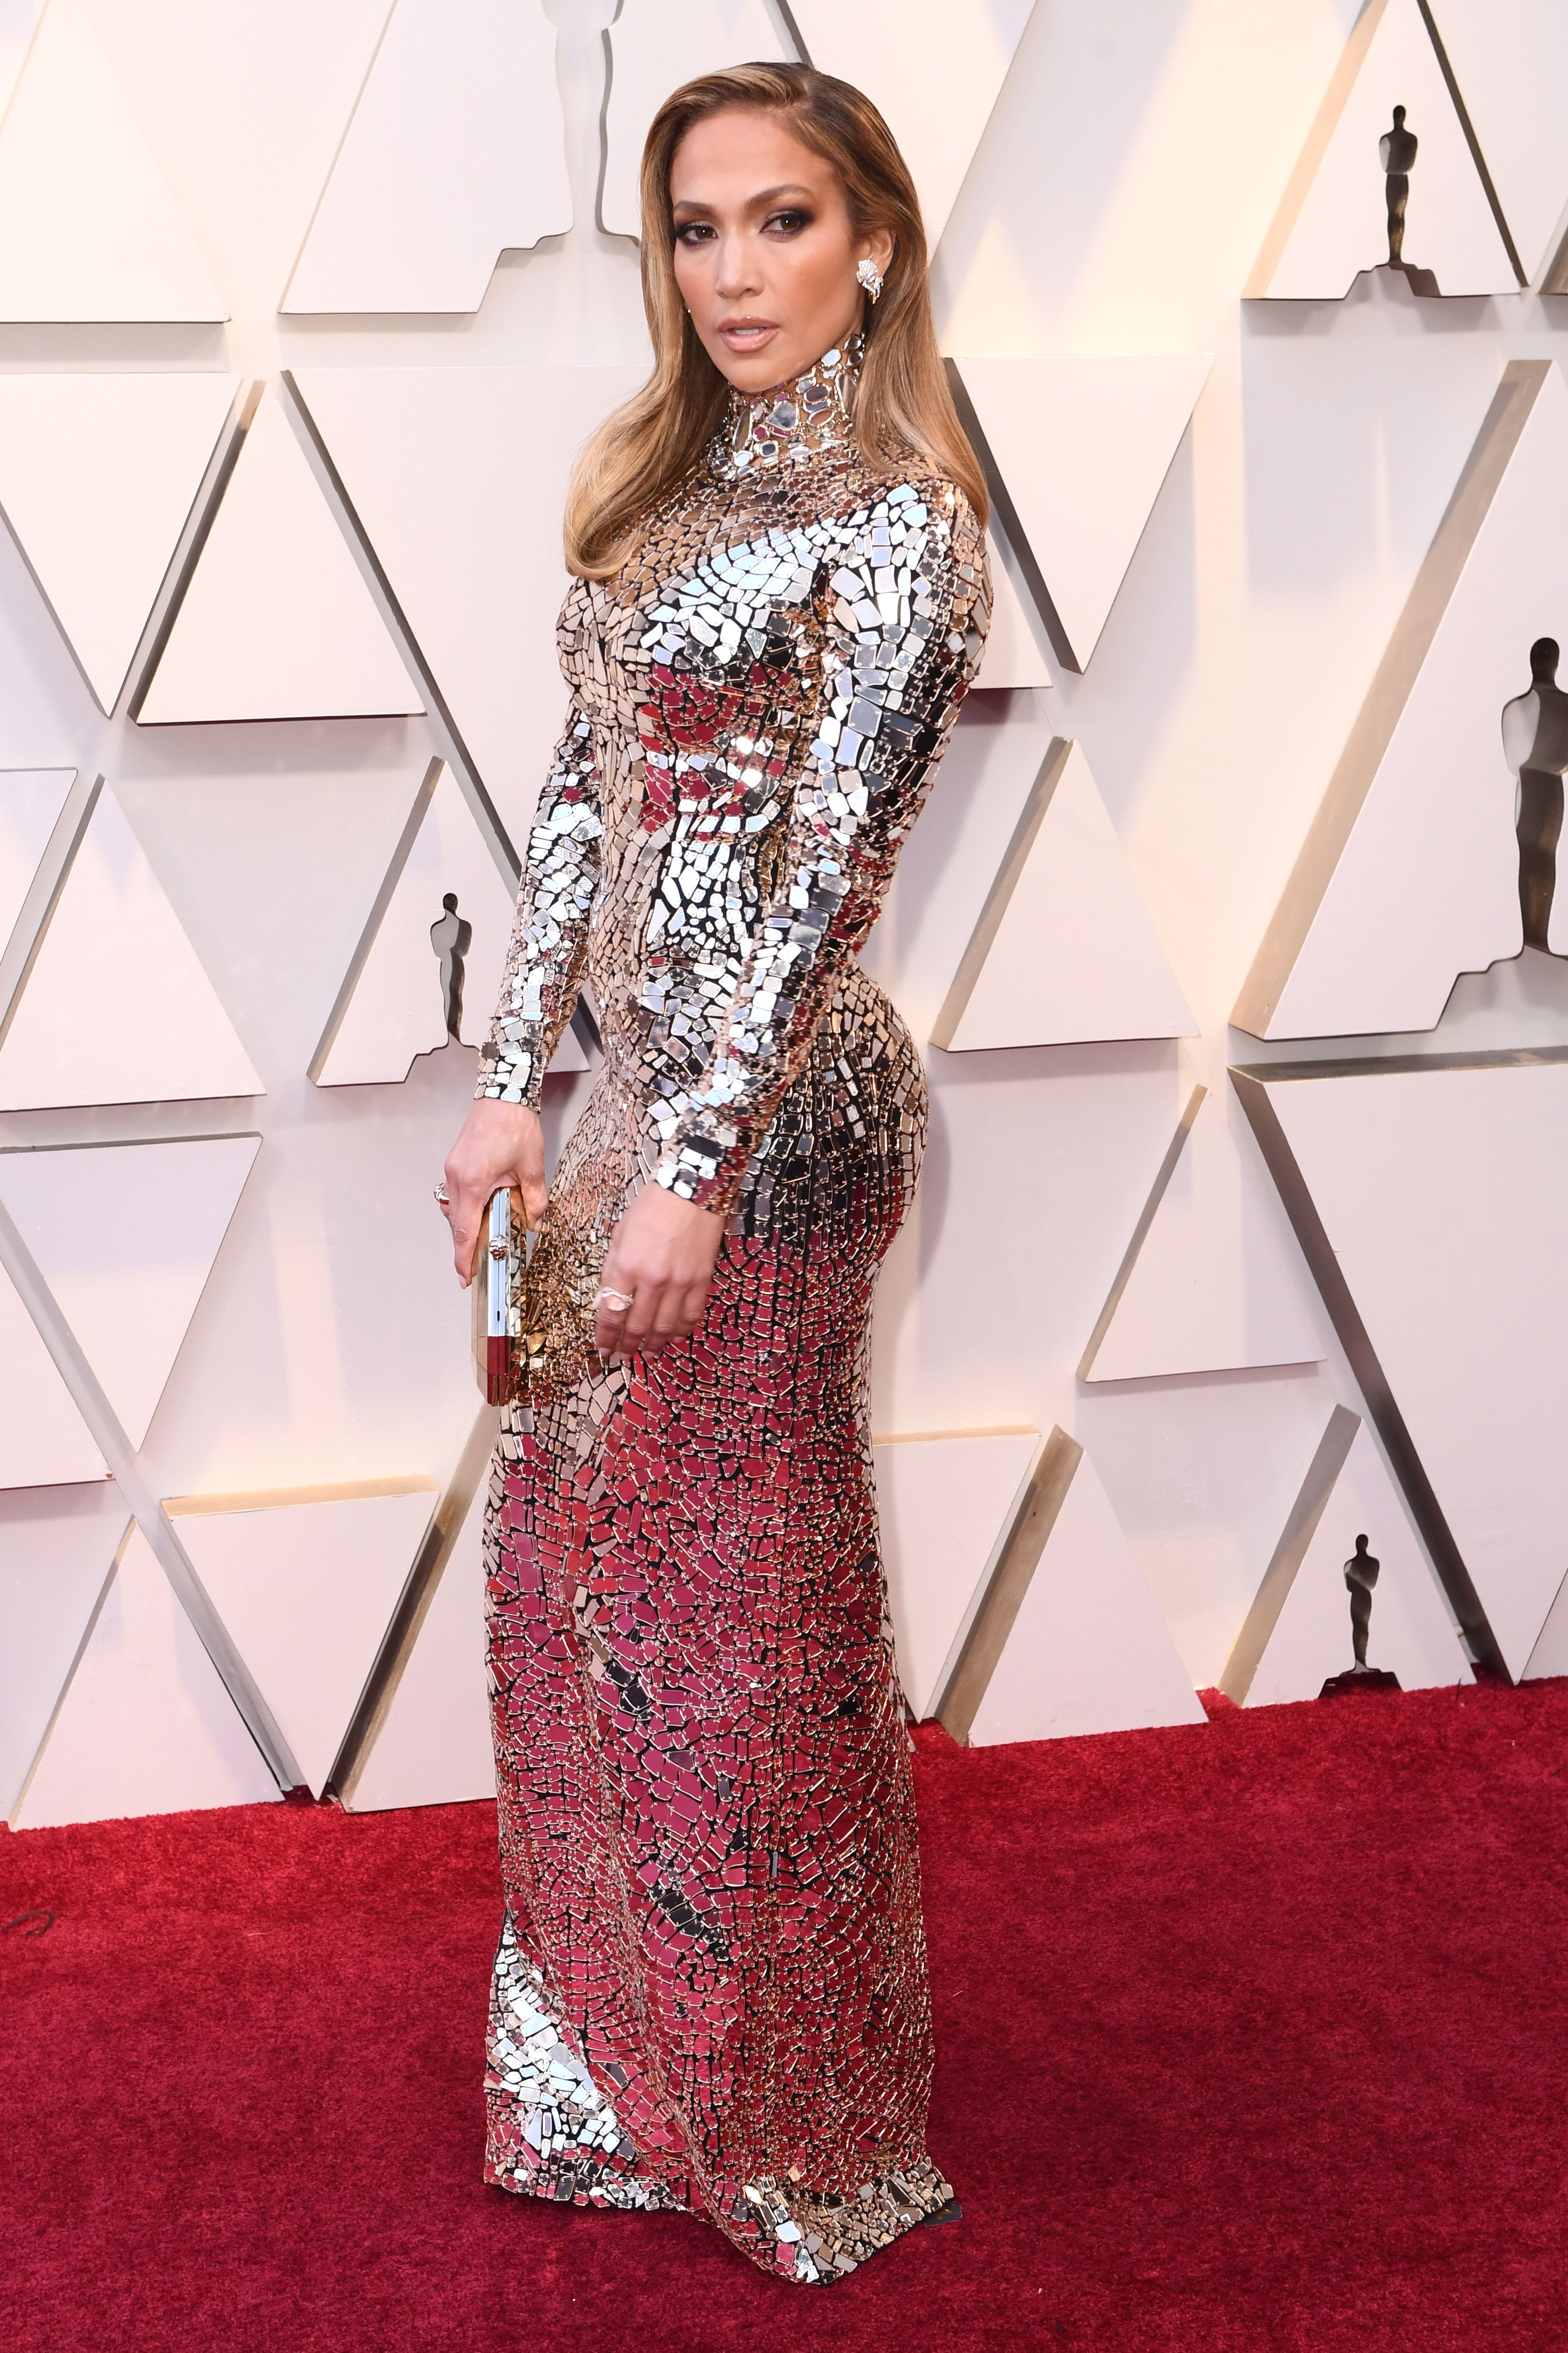 shutterstock 10112734hc Jennifer Lopez Looked Like a Walking Disco Ball at the Oscars—and Yes, It Was Hot